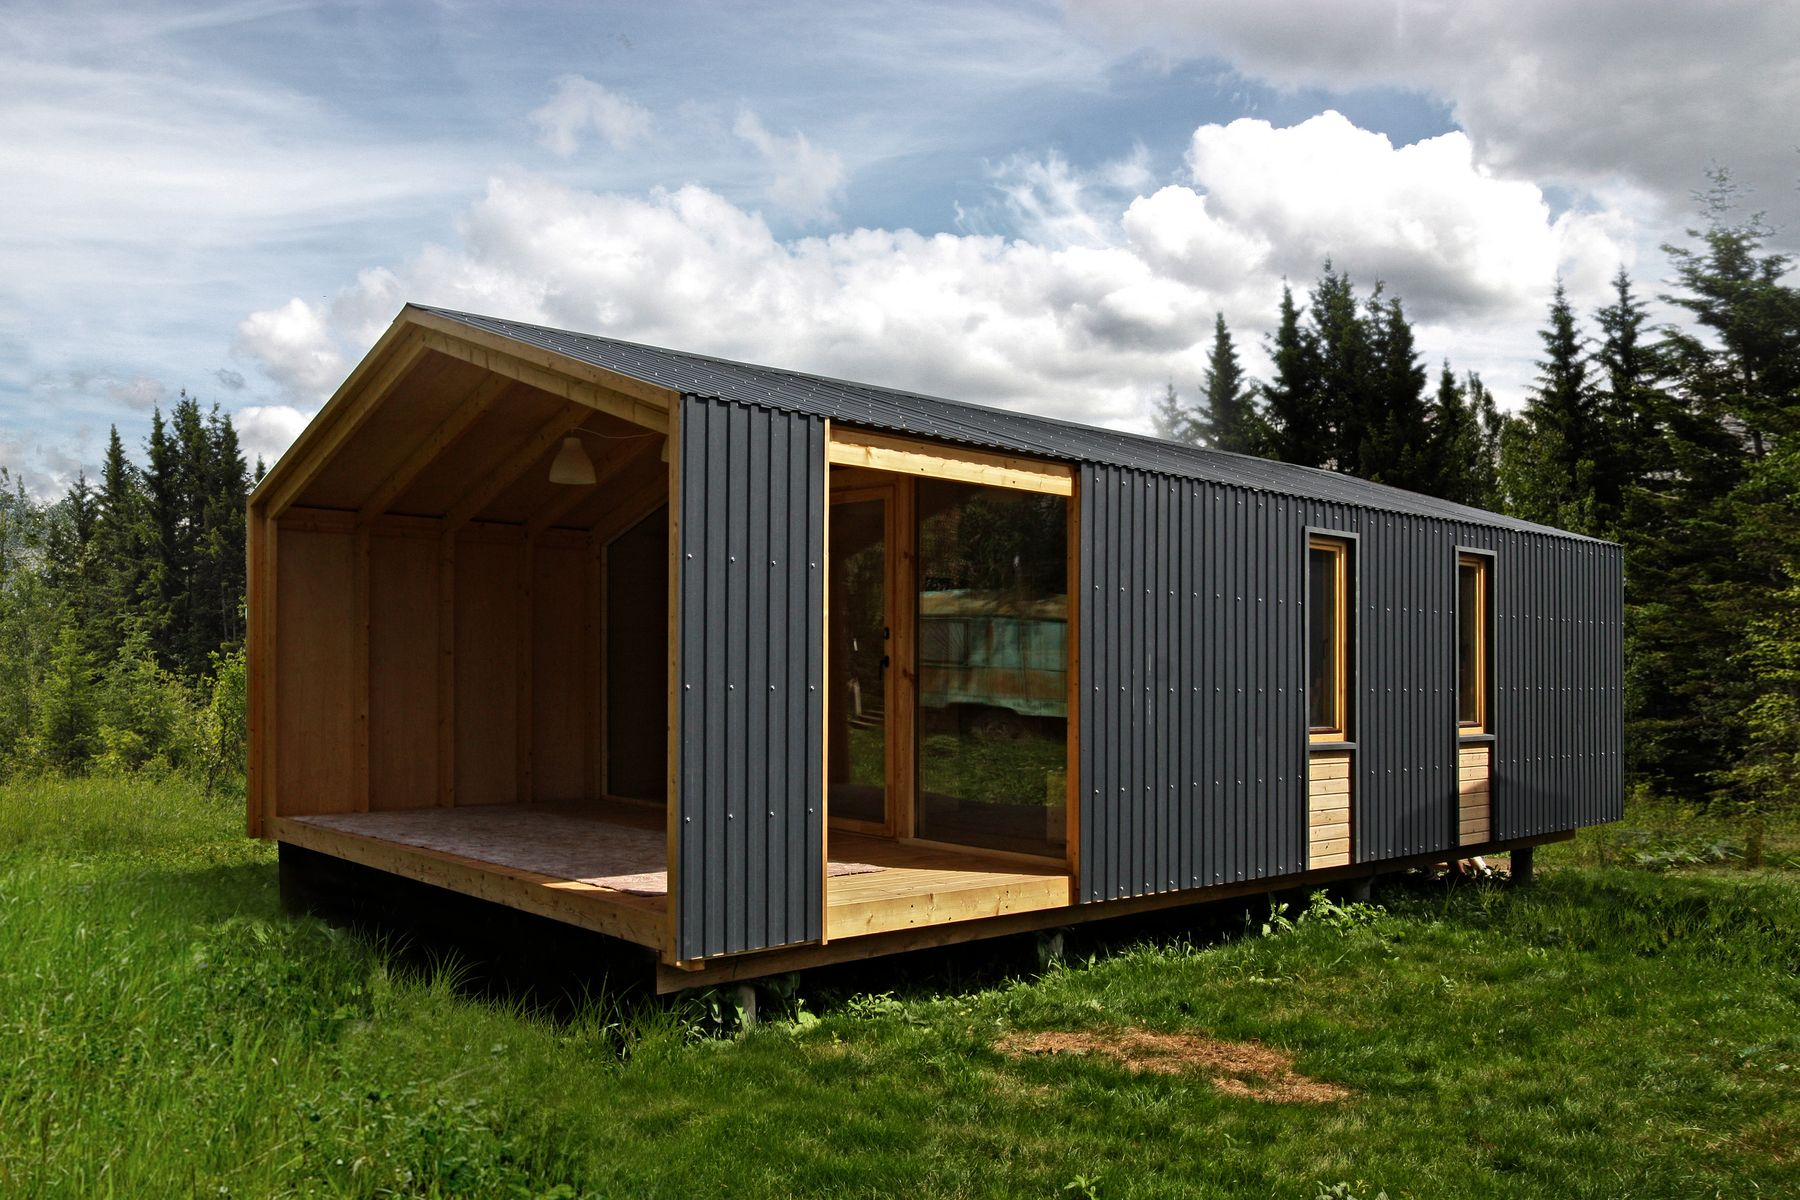 Gallery Dubldom A Modular Tiny House From Russia Bio